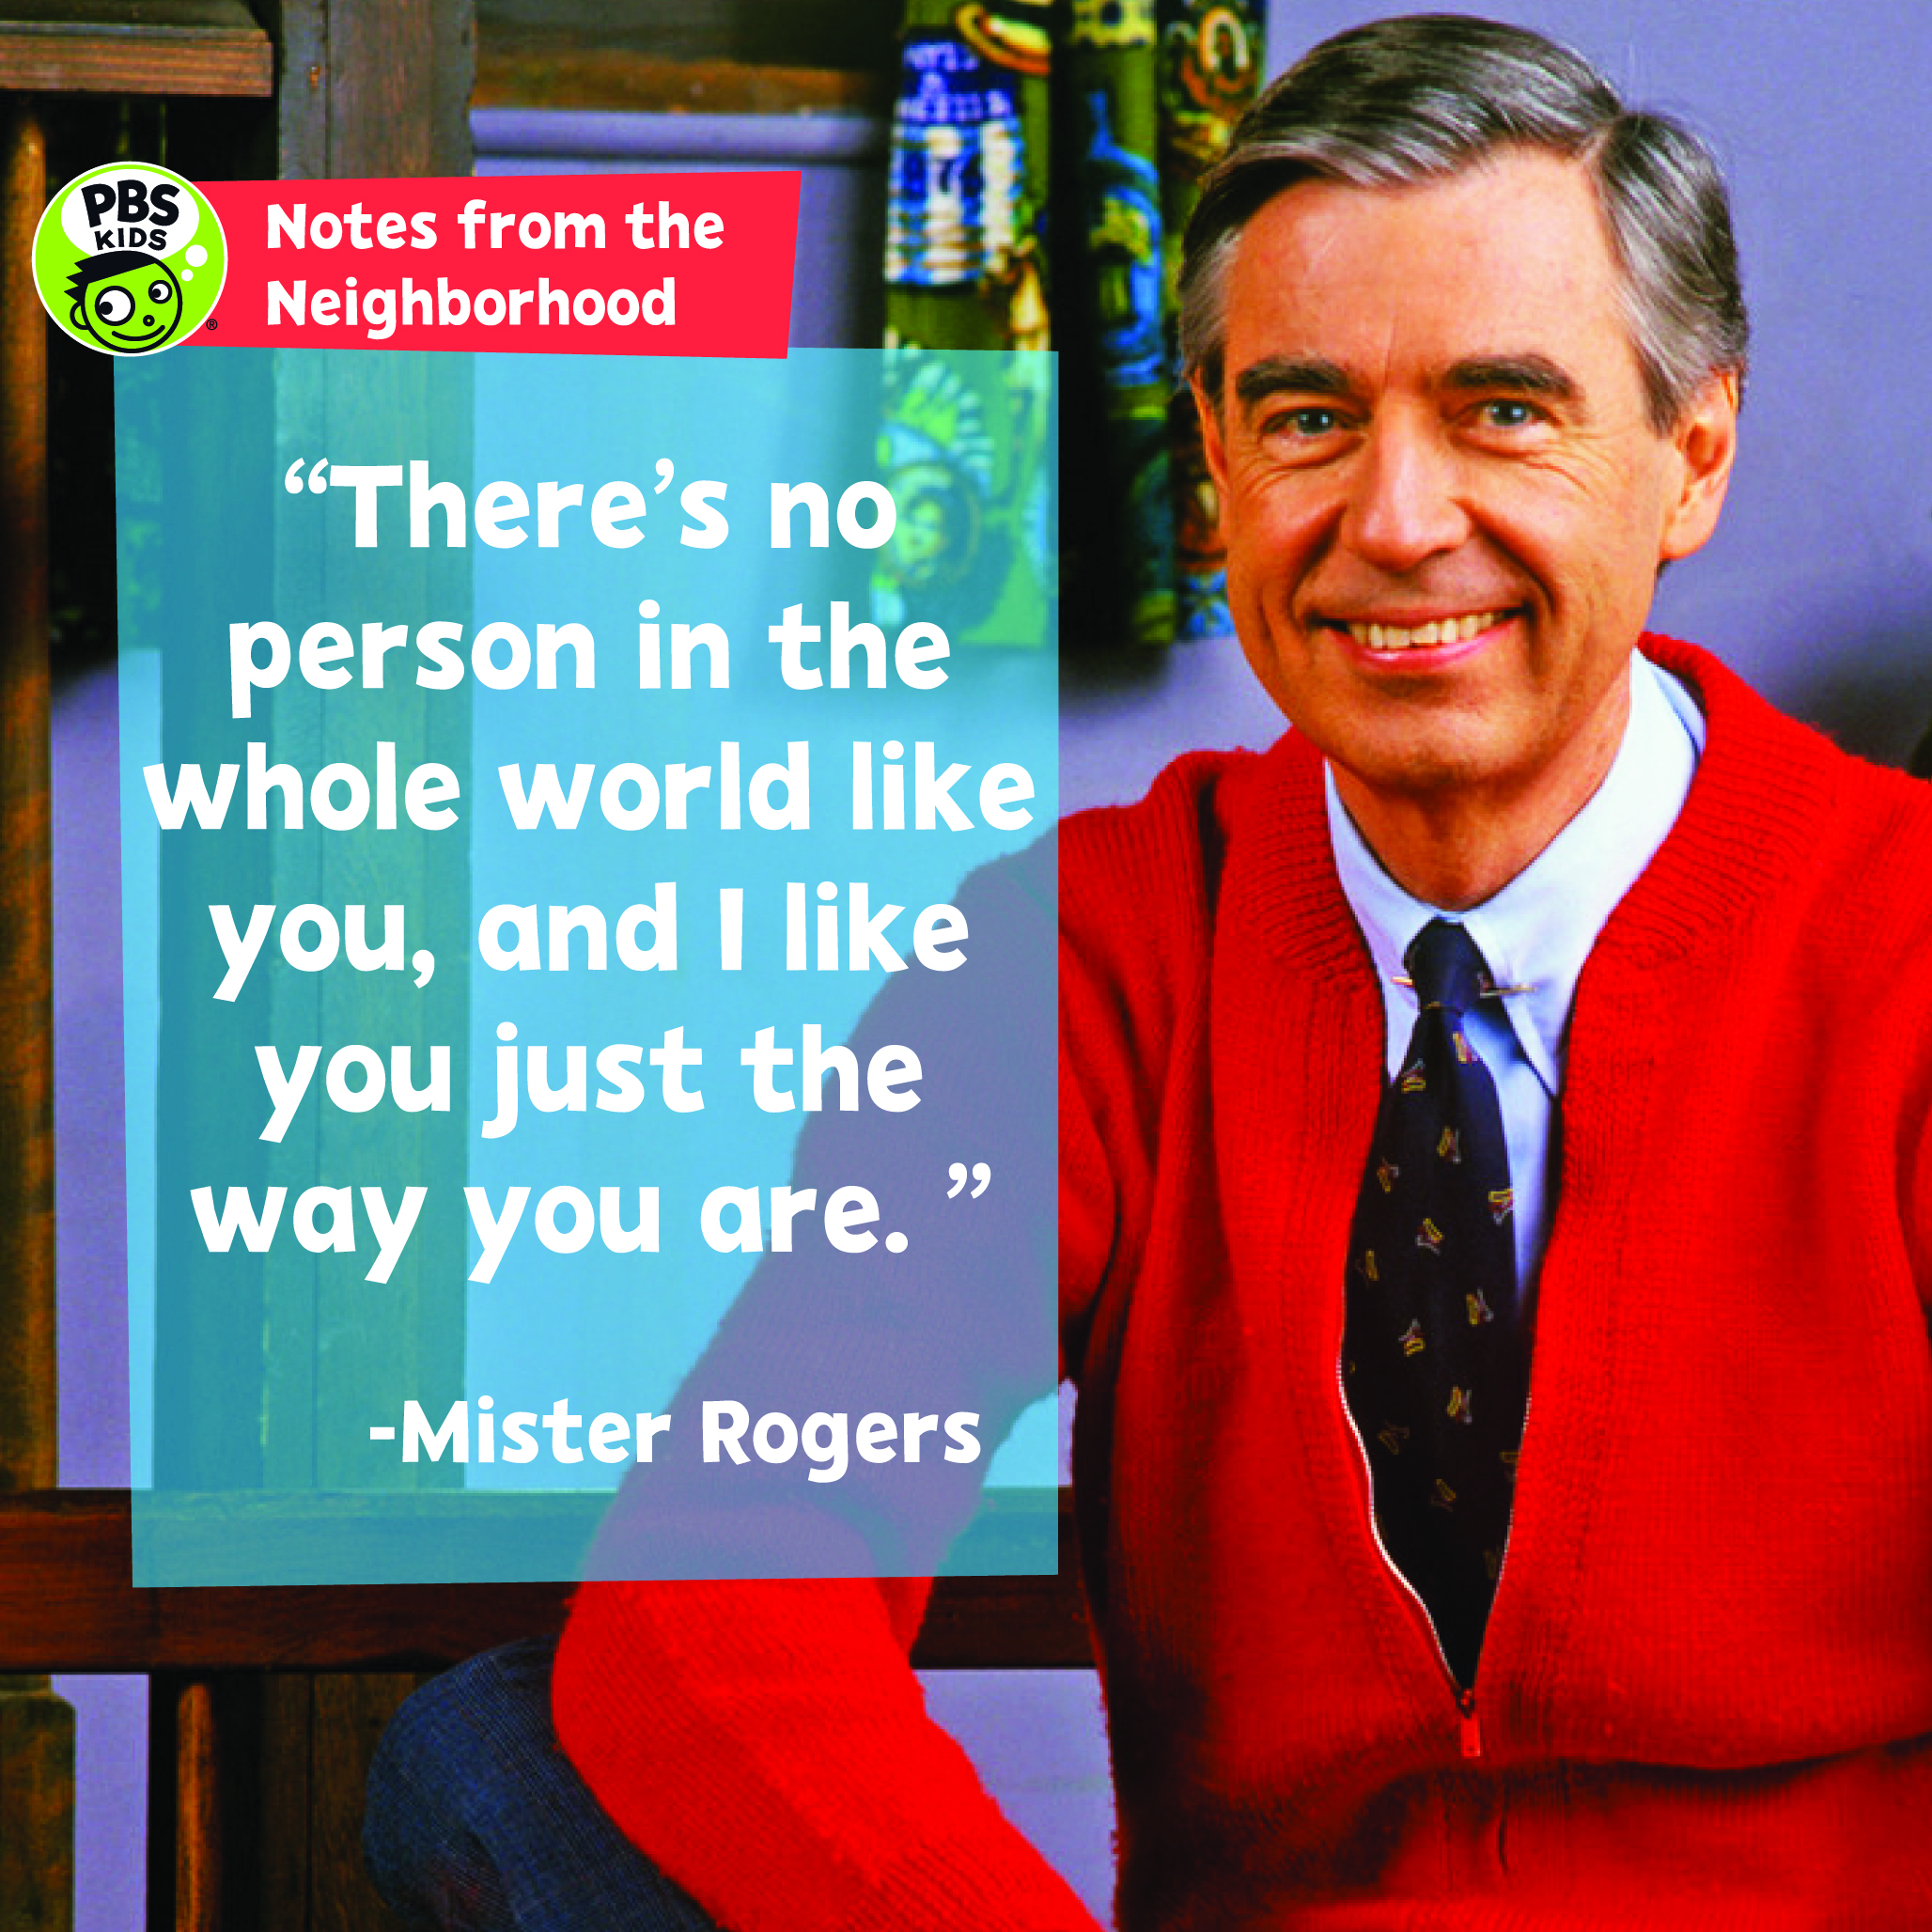 It S A Wonderful Month In The Neighborhood Twitch Announces Marathon Of Pbs Kids Iconic Series Mister Rogers Neighborhood Woub Public Media